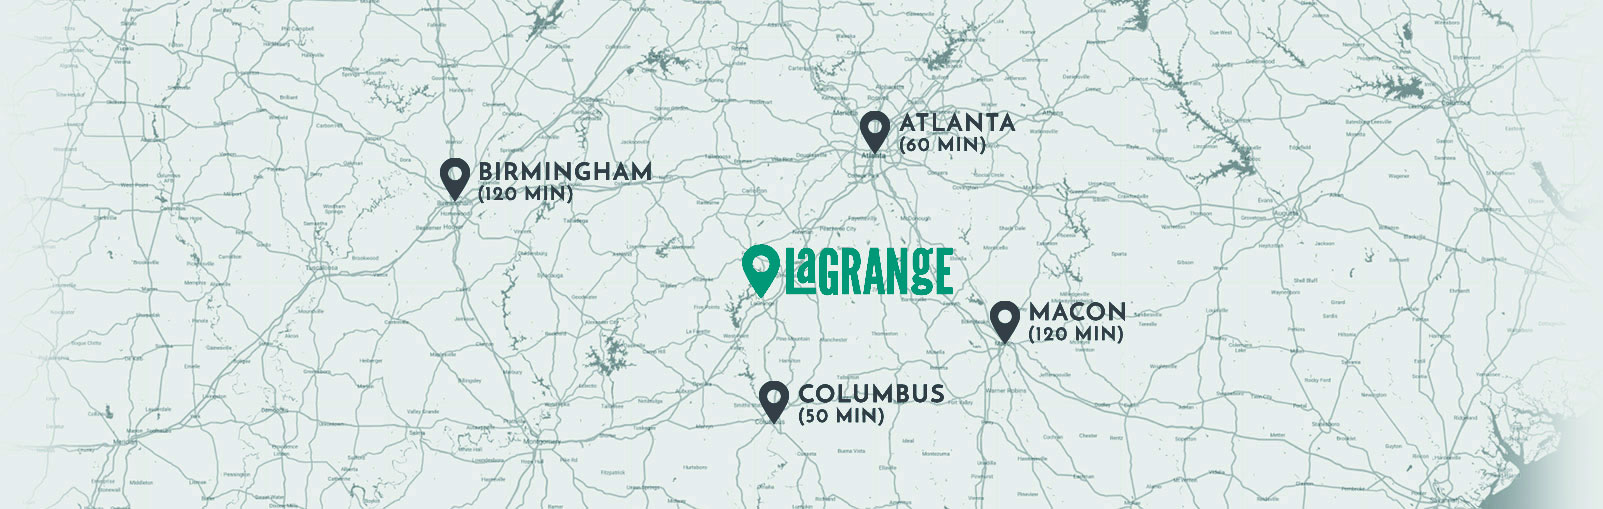 Location map of LaGrange GA